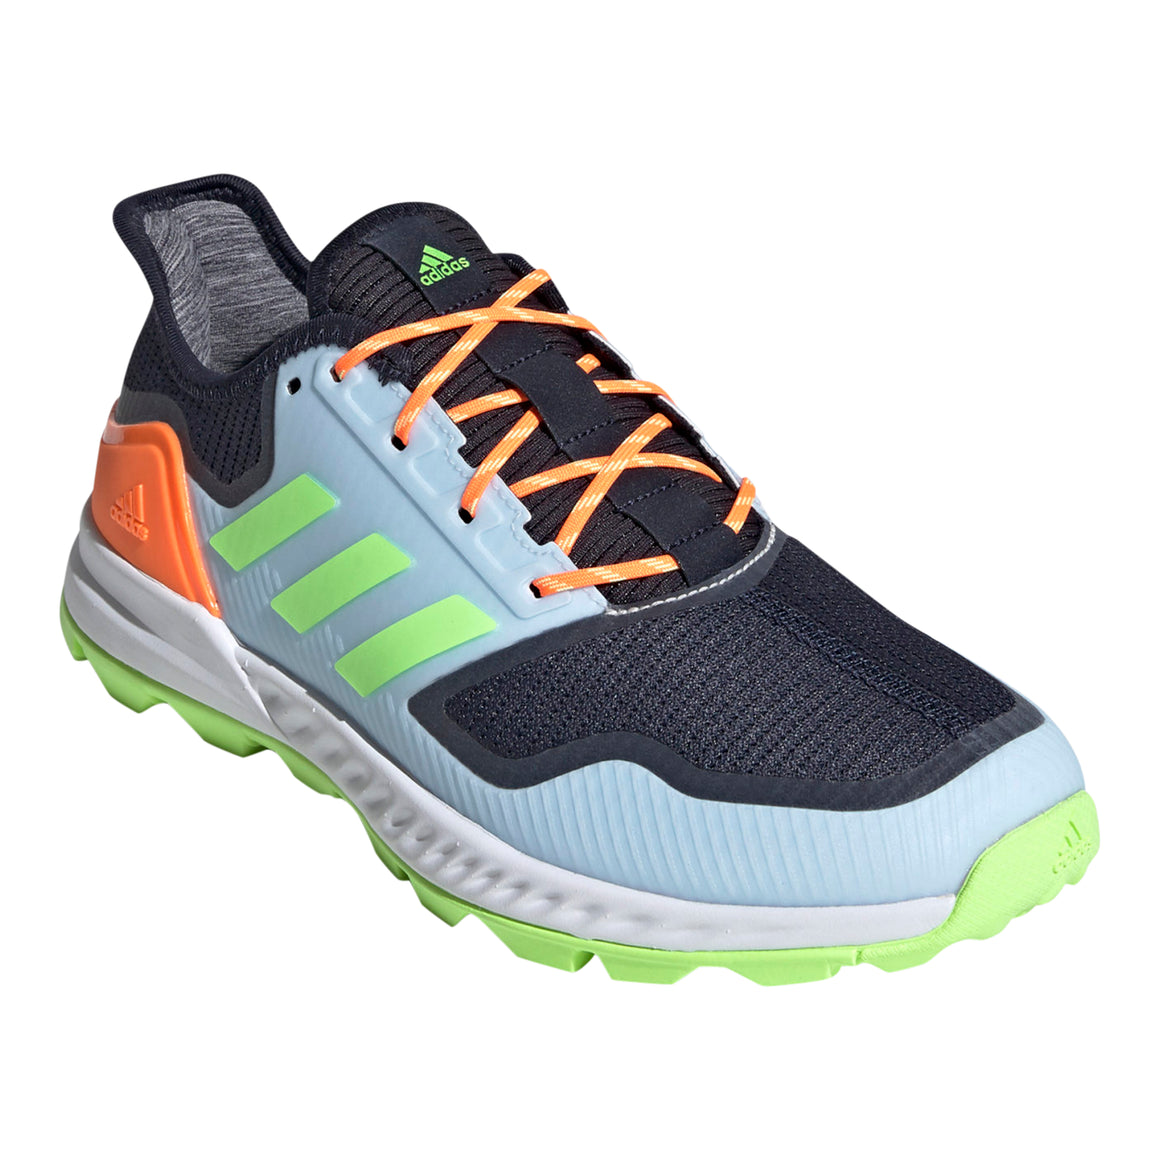 Adipower Hockey Shoes for Men